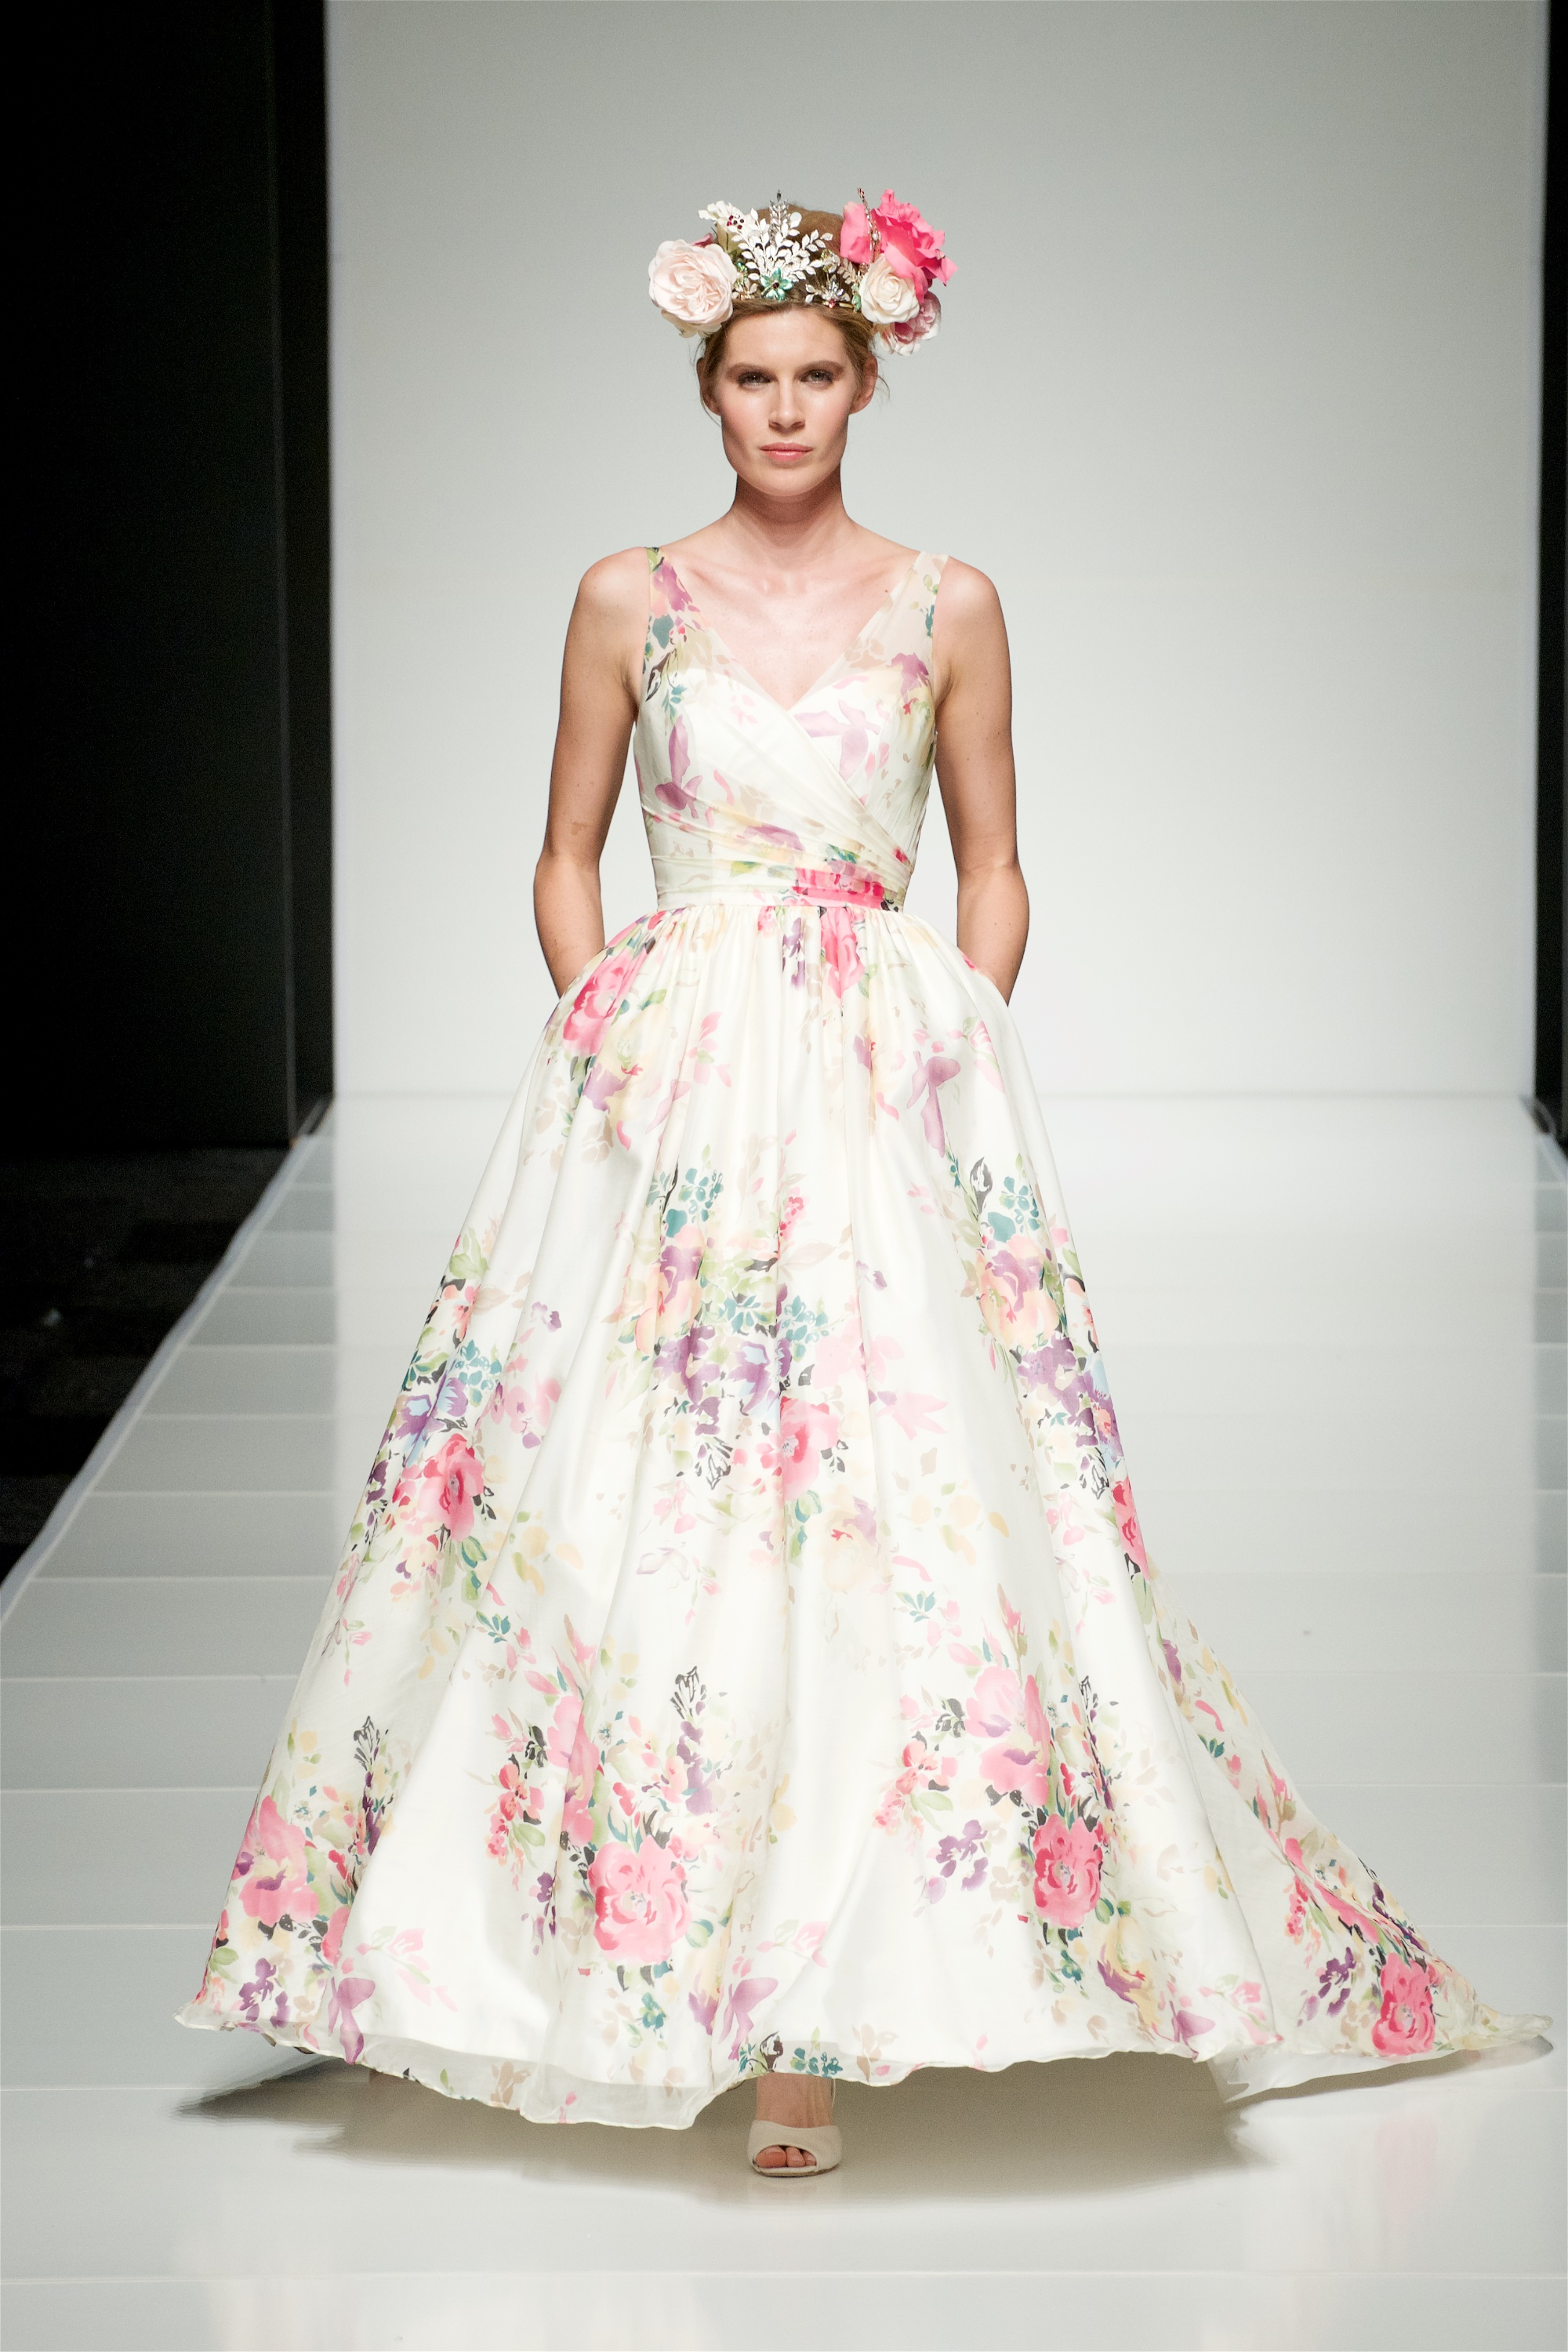 The Hottest Wedding Dress Picks From White Gallery For Fashion